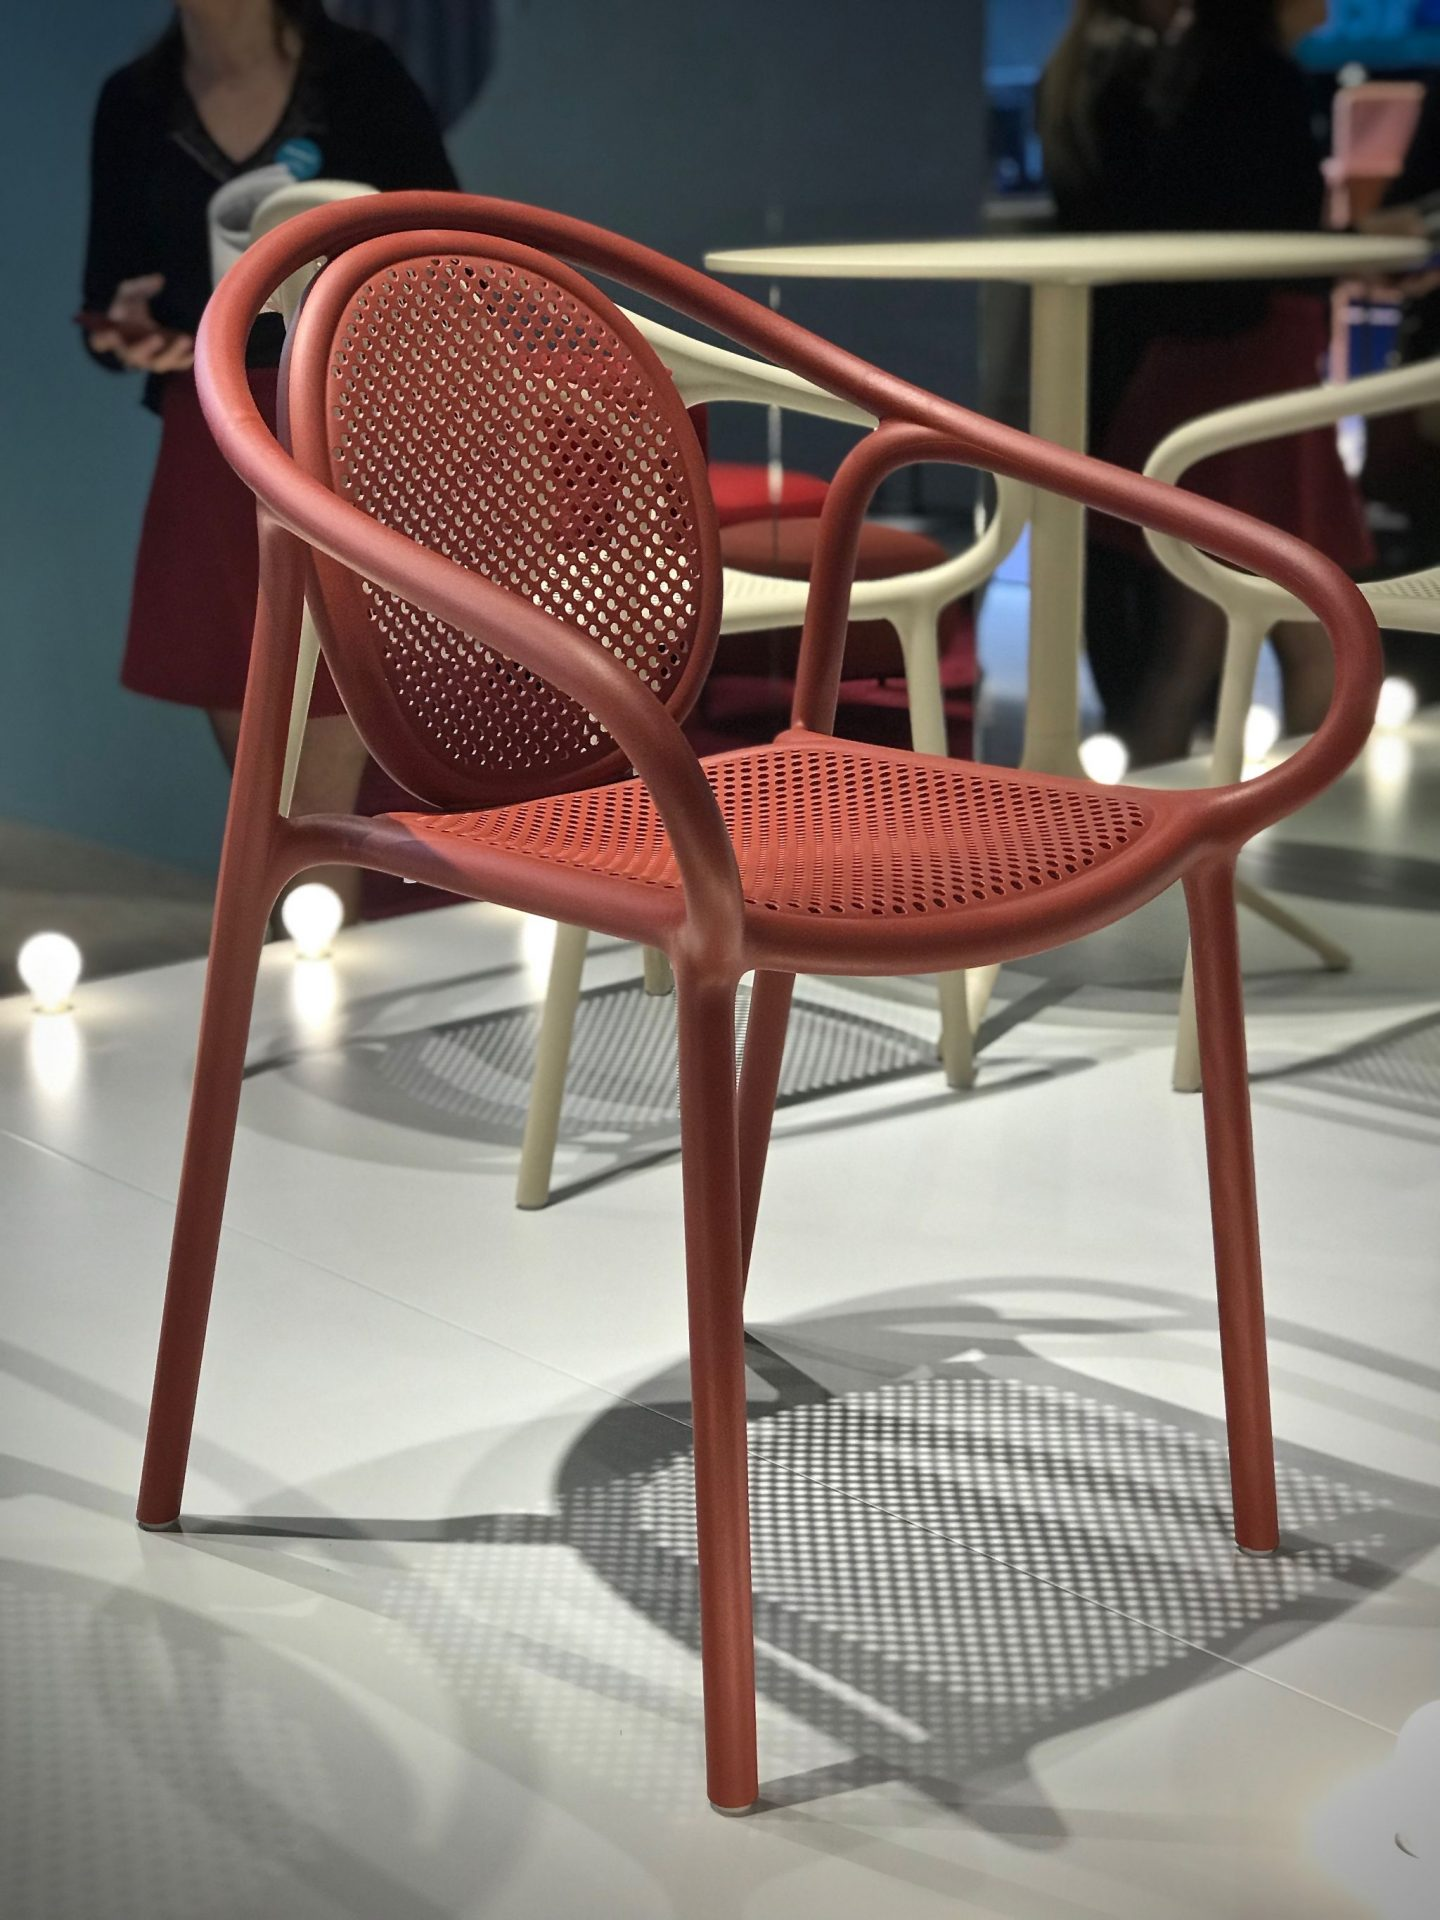 colour and form from Maison & Objet,  punched surfaces, shadow play, Hello Peagreen